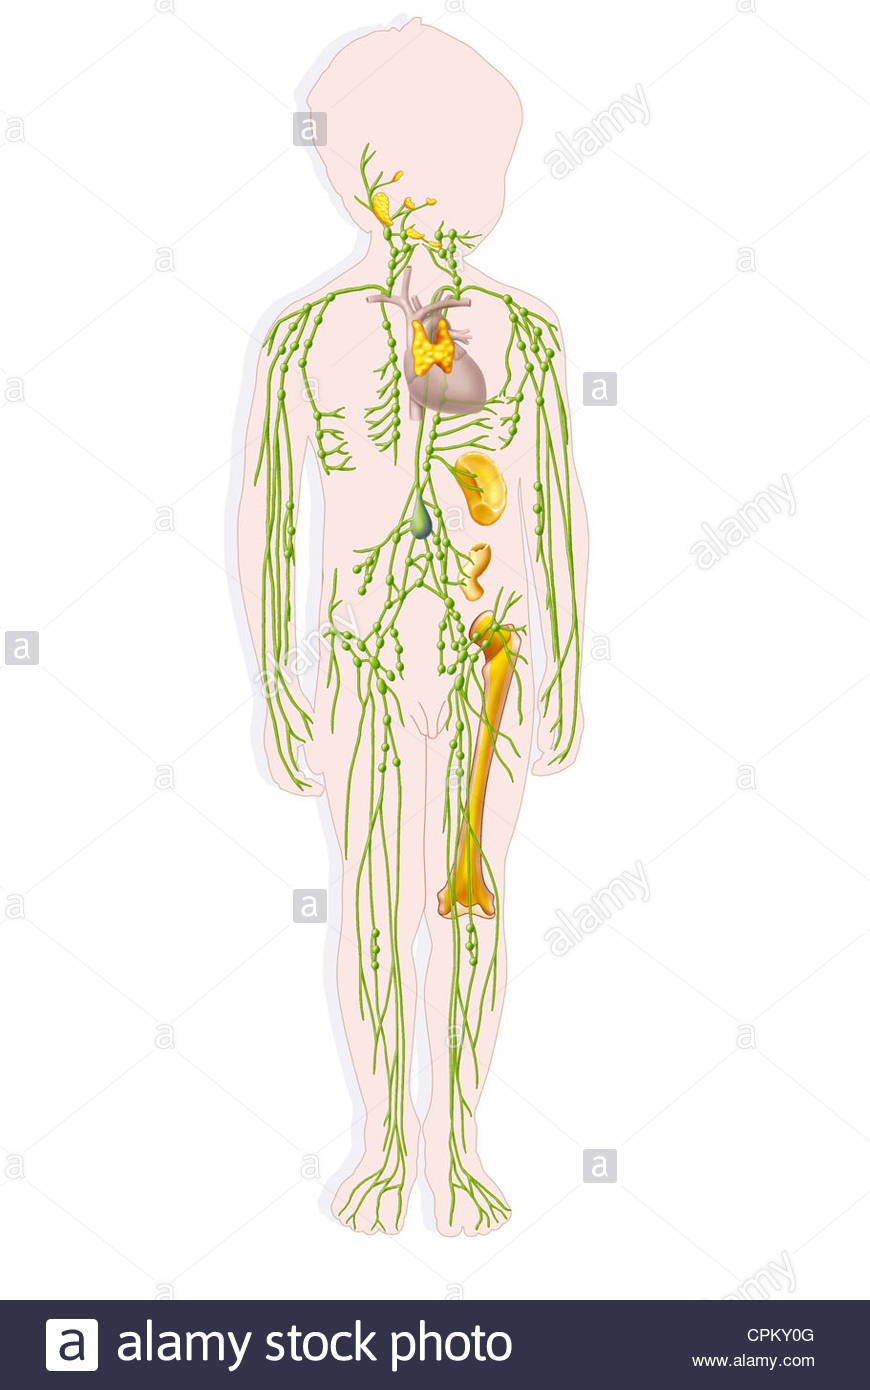 870x1390 Child Lymphatic System, Drawing Stock Photo 48381440